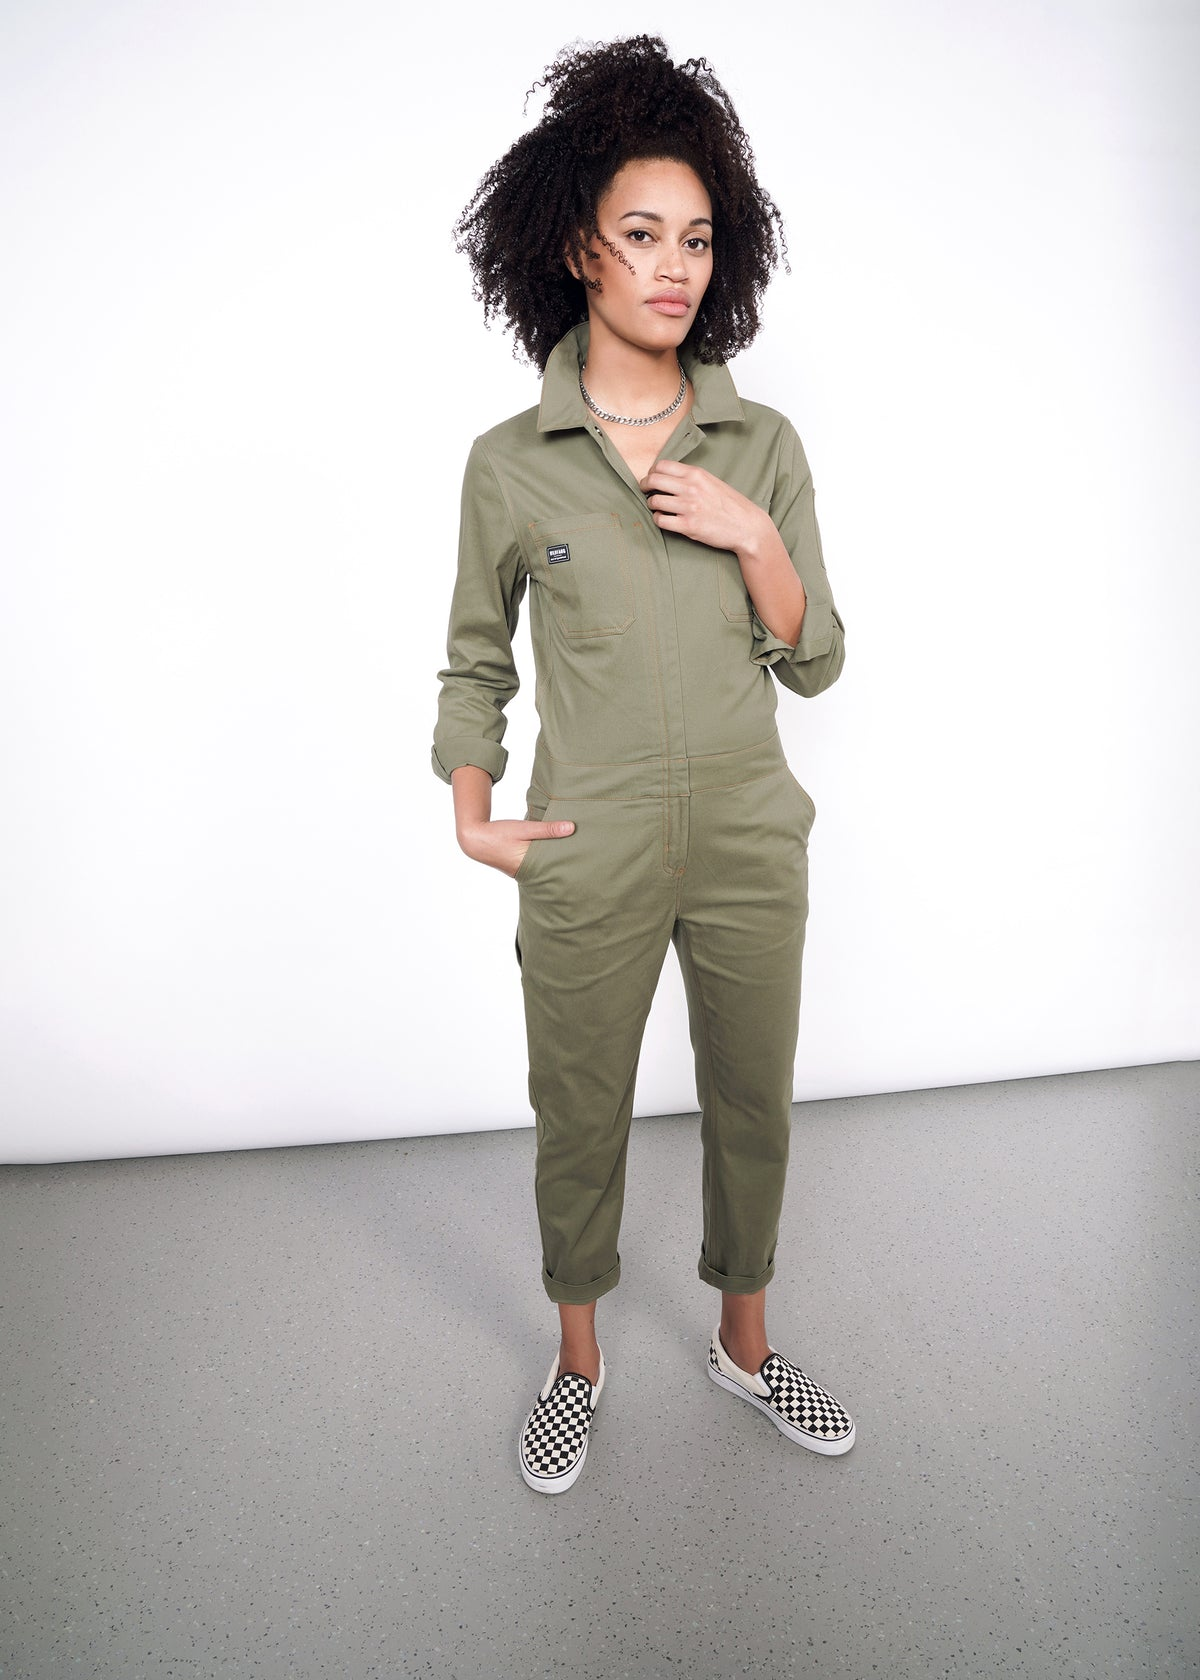 Model wearing olive coveralls slightly unzipped with no shirt underneath, styled with a silver necklace and vans. Coverall legs are cuffed once.